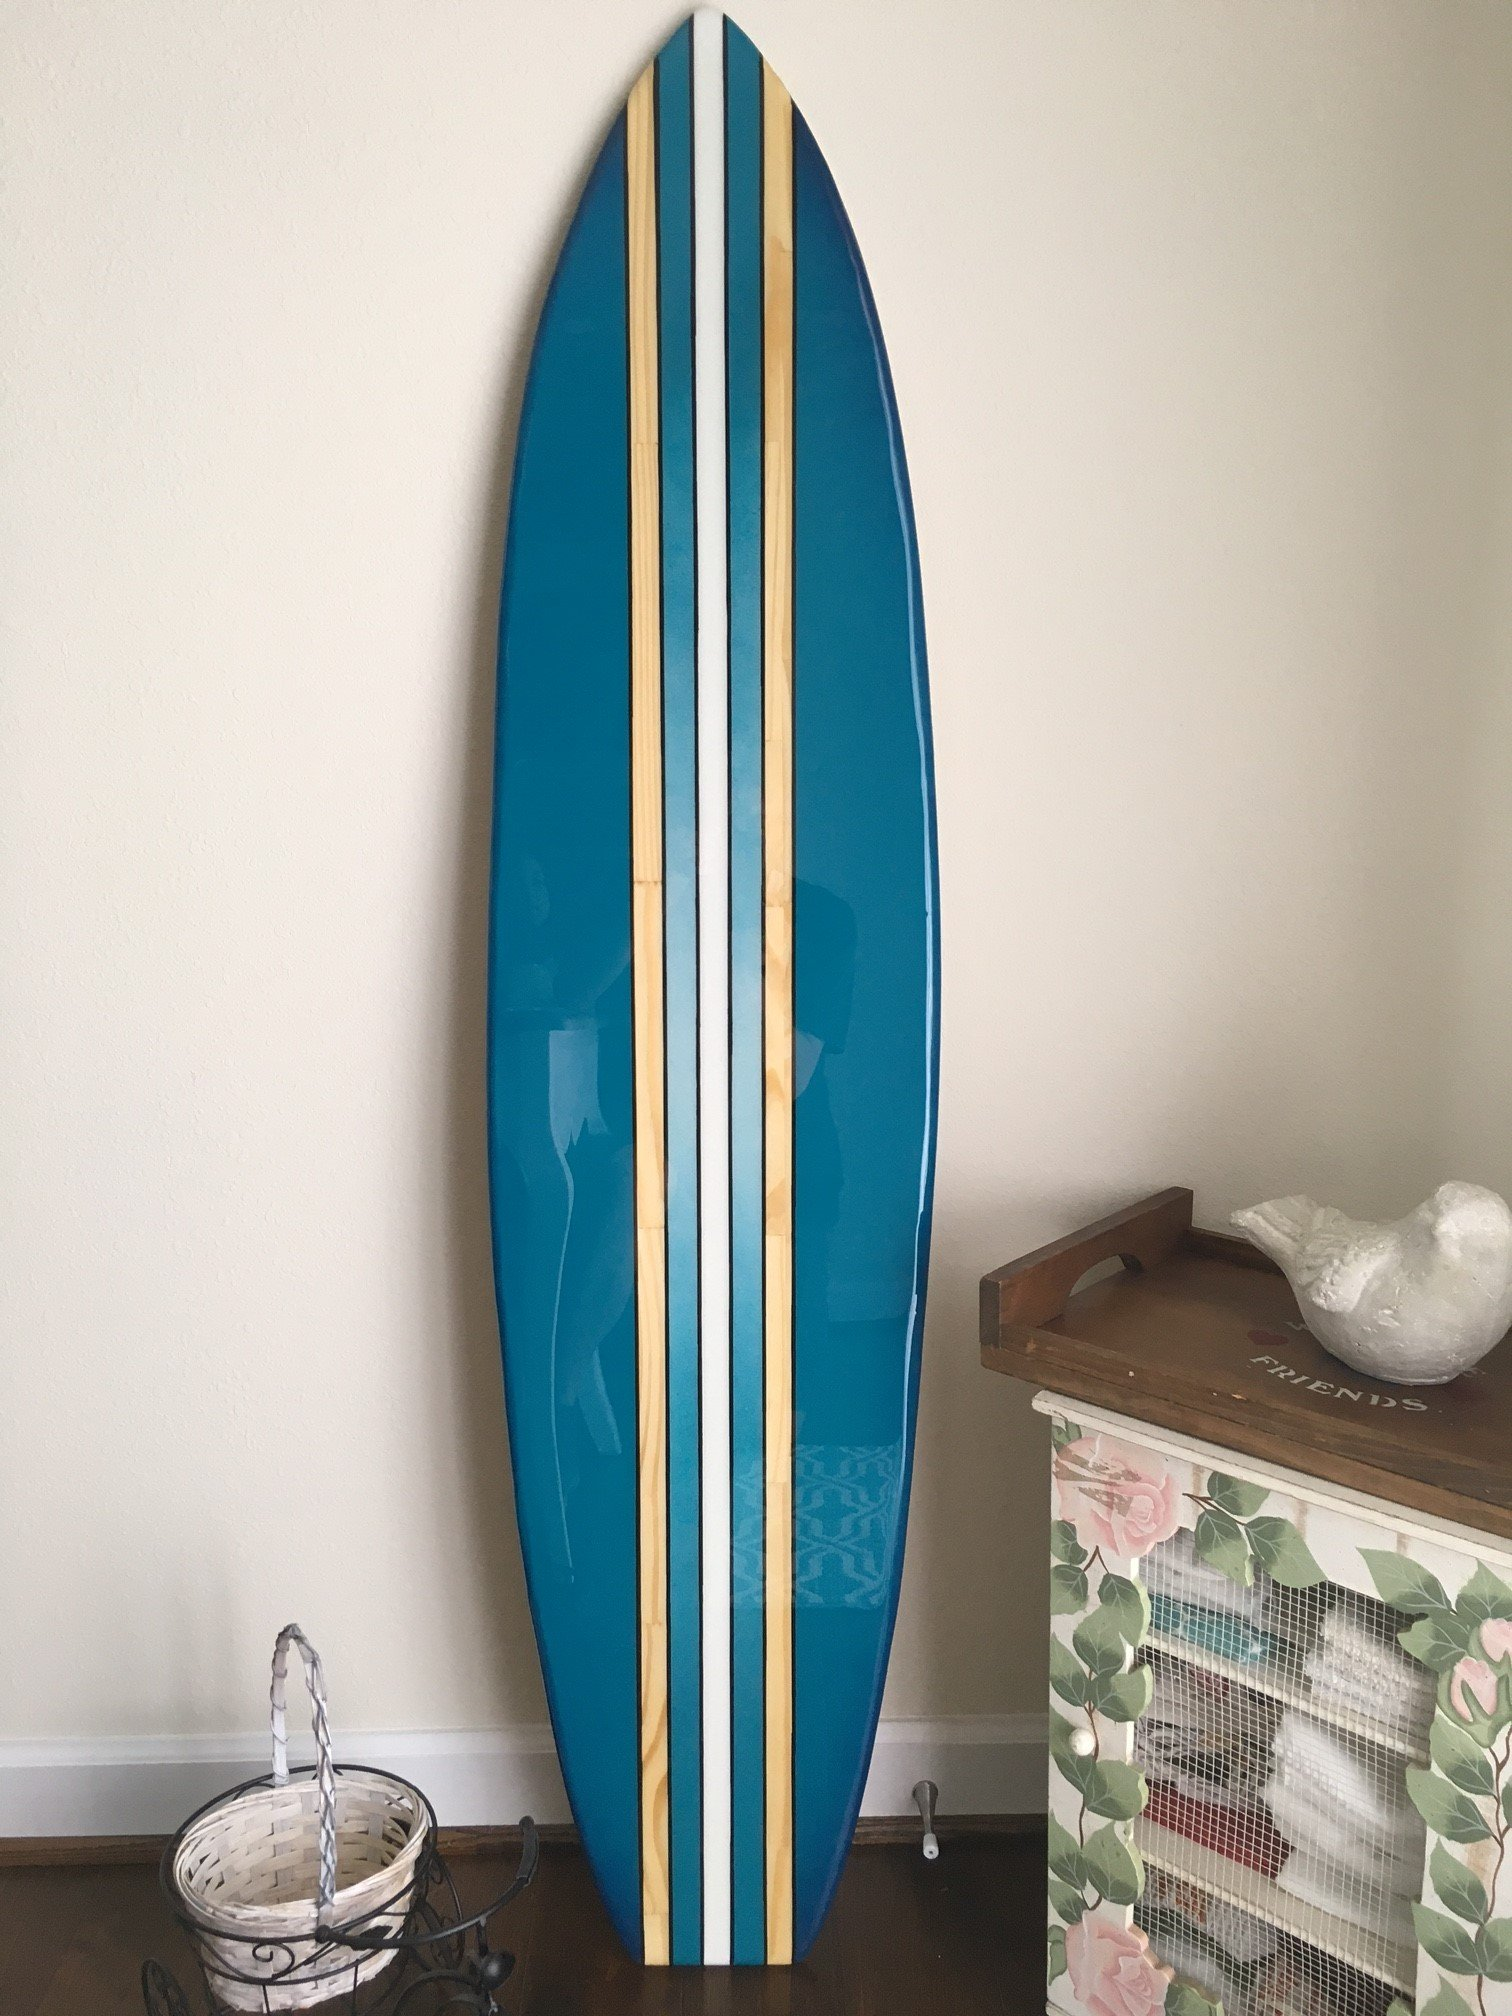 Shredder style surfboard wall hanging. Five foot surfboard wall art. Teal with fade.